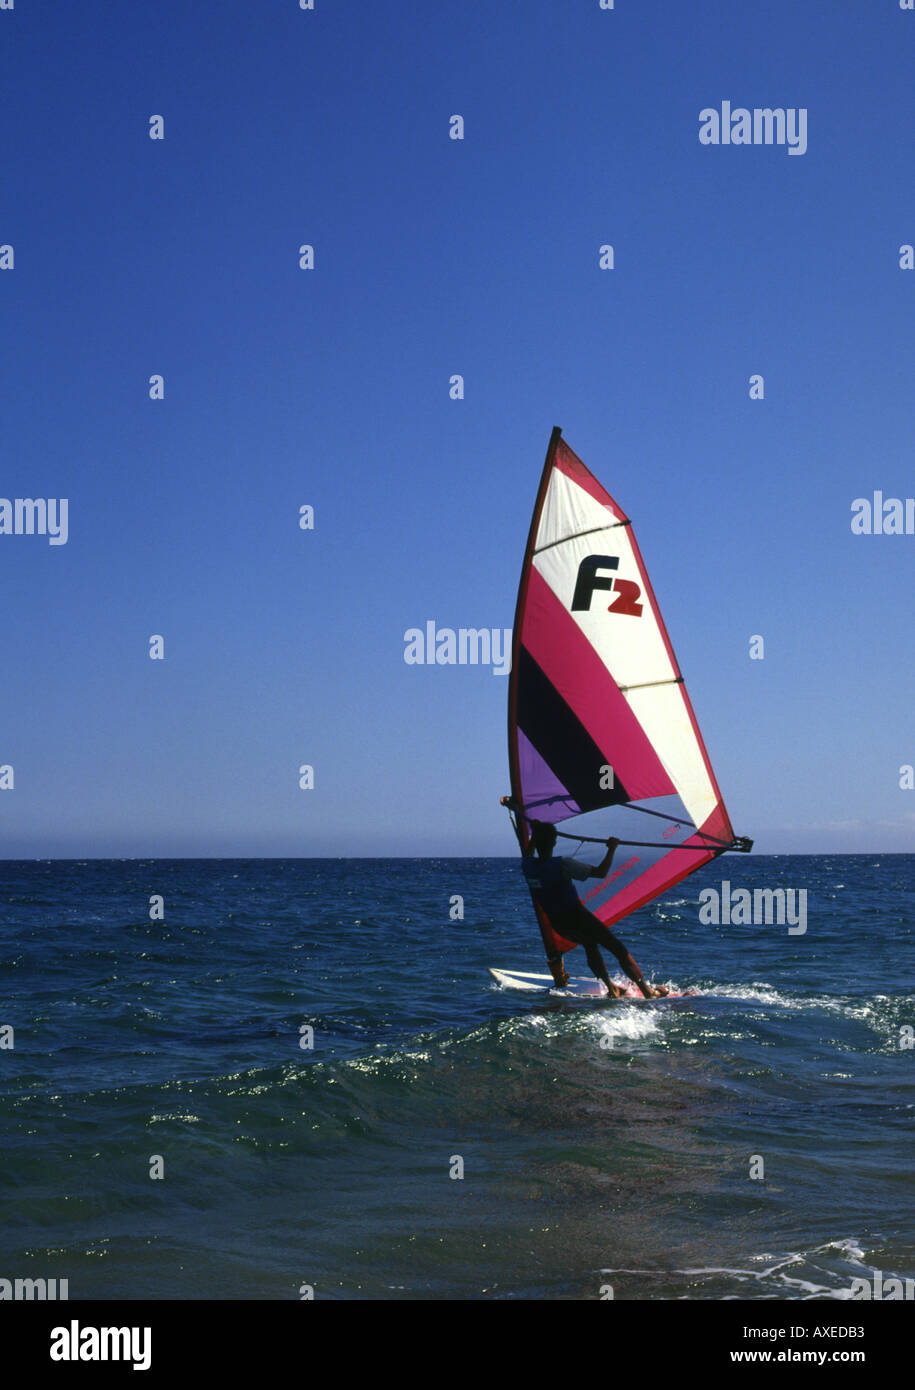 dh Wind surfer PLAYA GRANDE LANZAROTE Red F2 sailing windsurfer